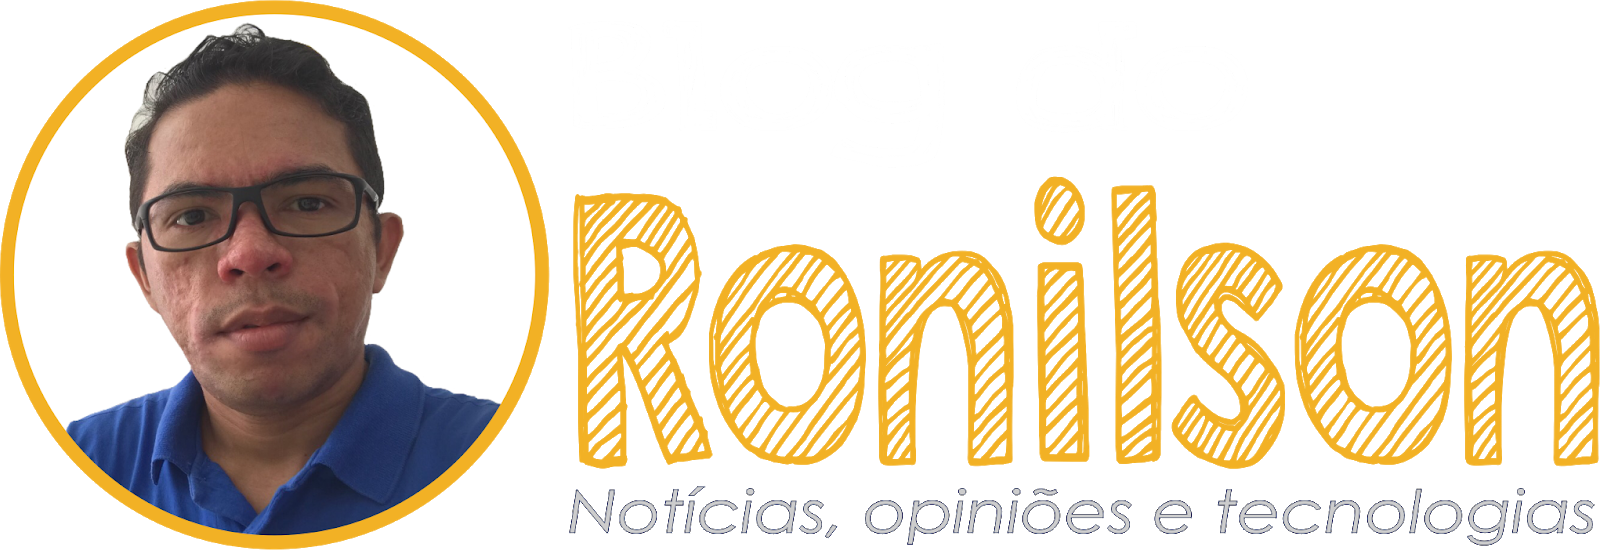 Blog do Ronilson